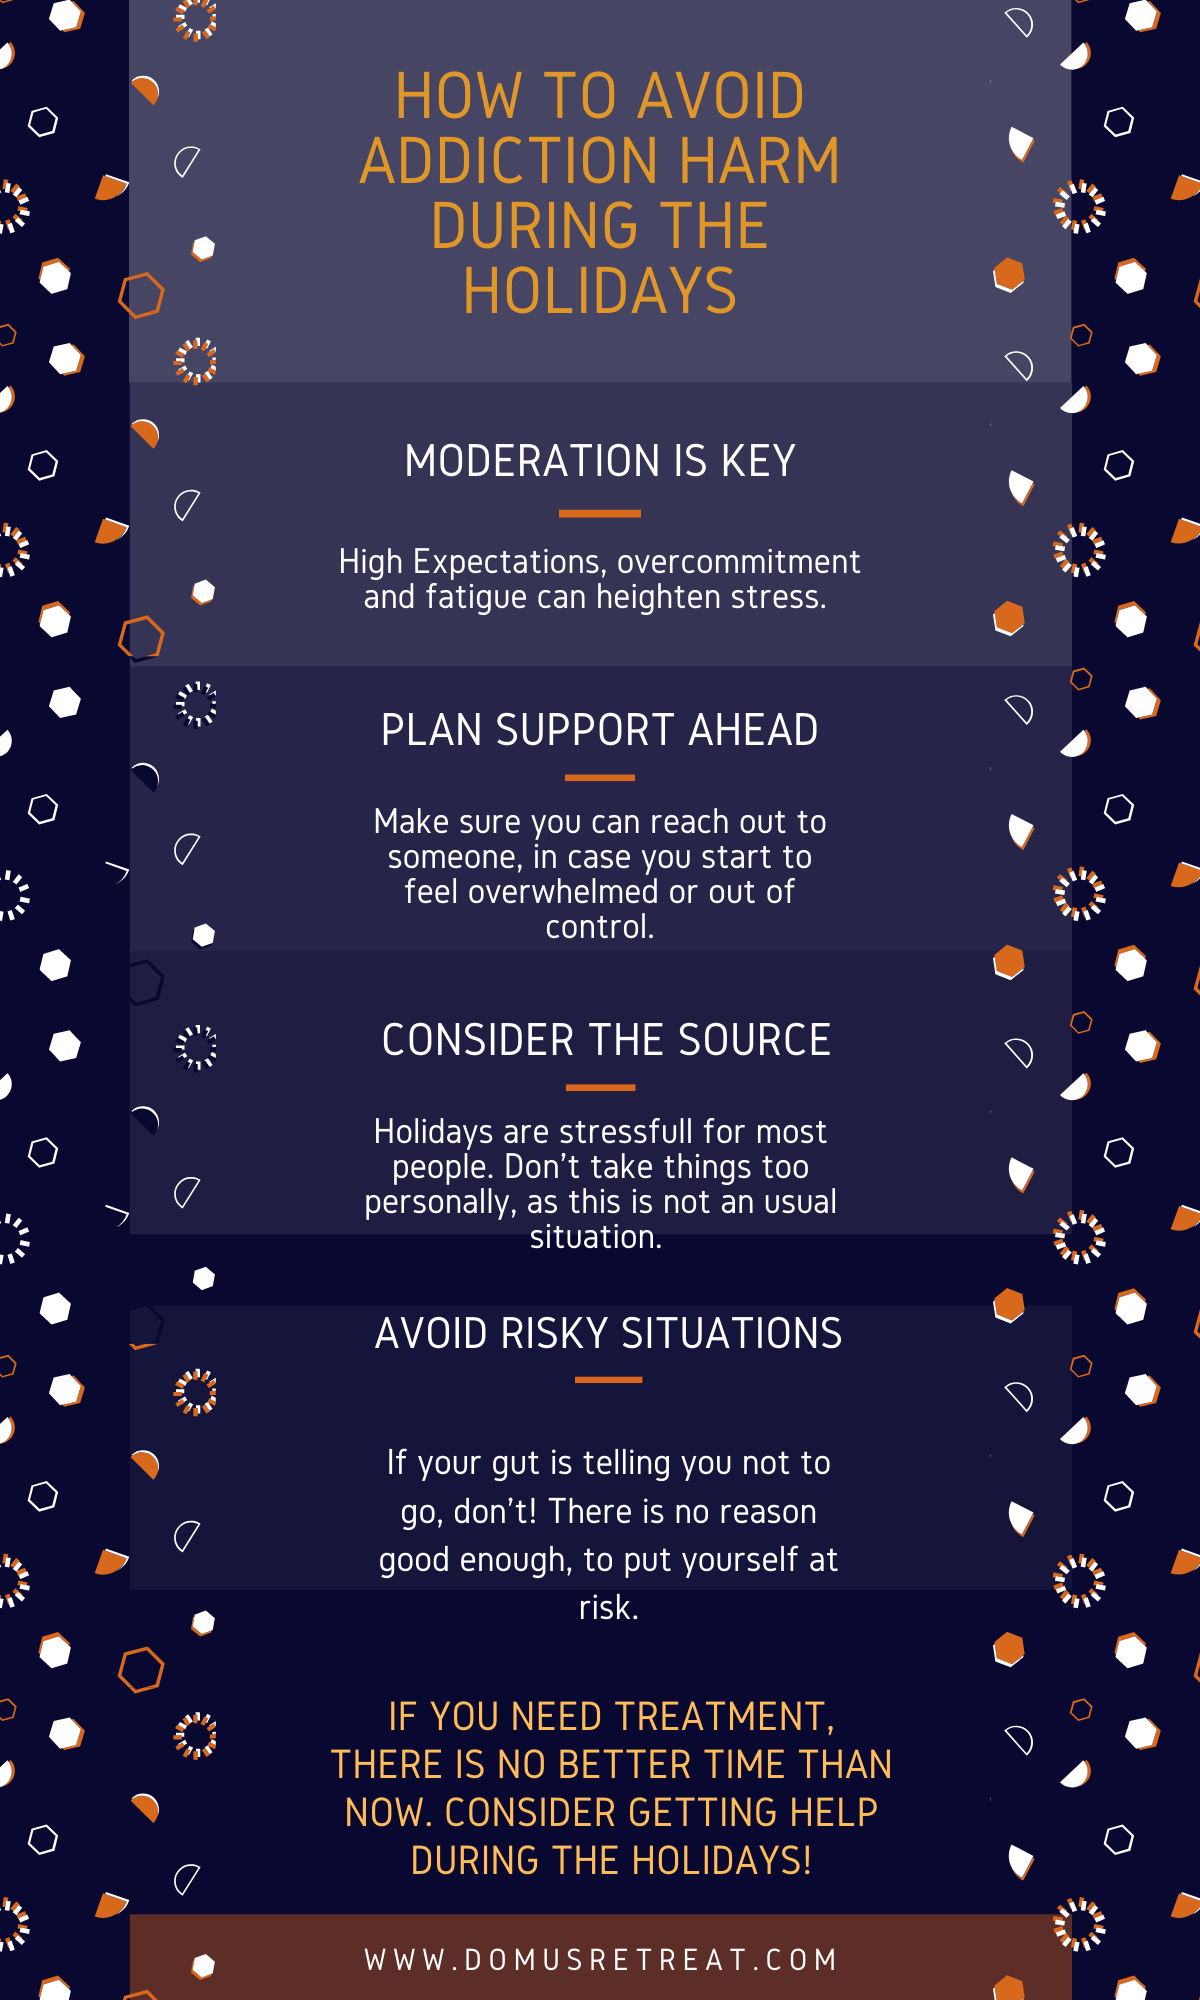 How To Avoid Drug & Alcohol Addiction Harm During Holidays